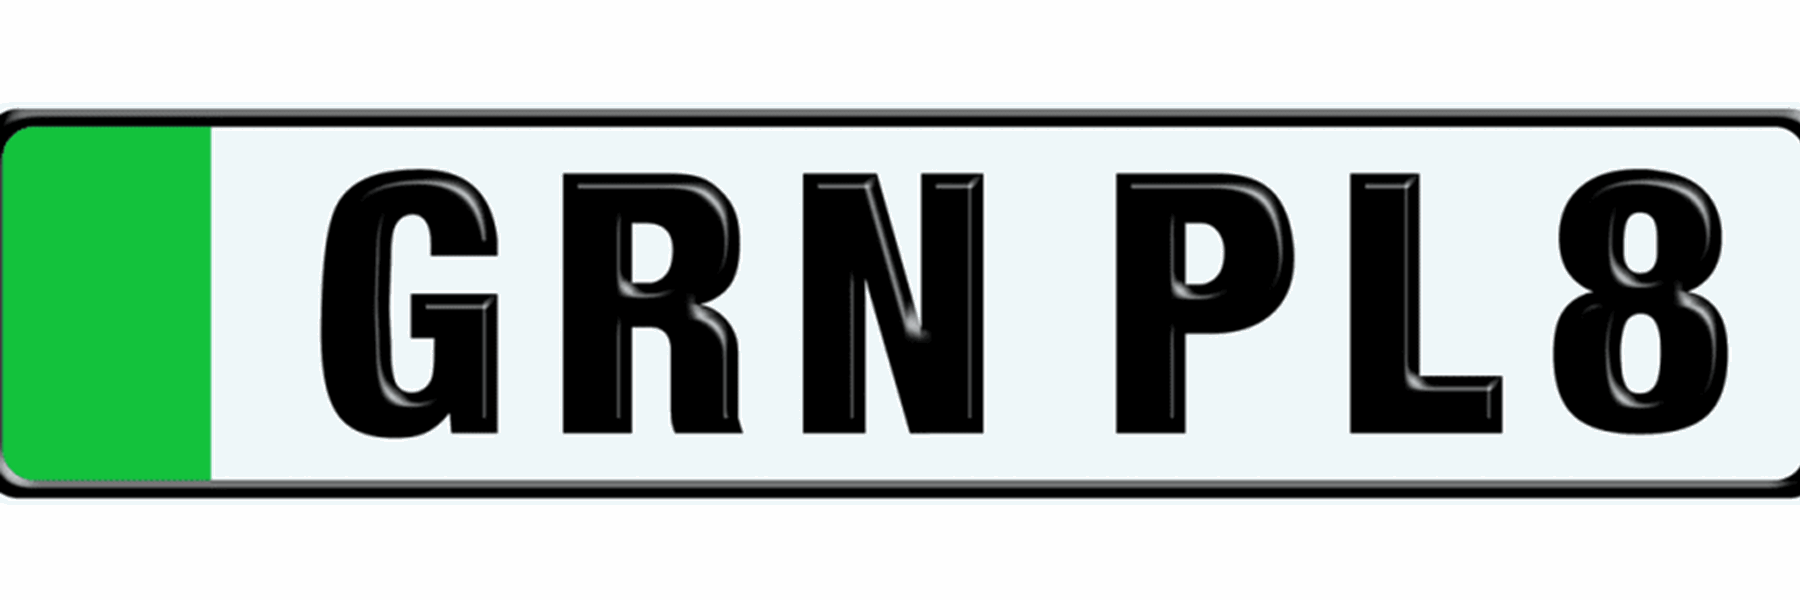 Green licence plates make their debut in the UK